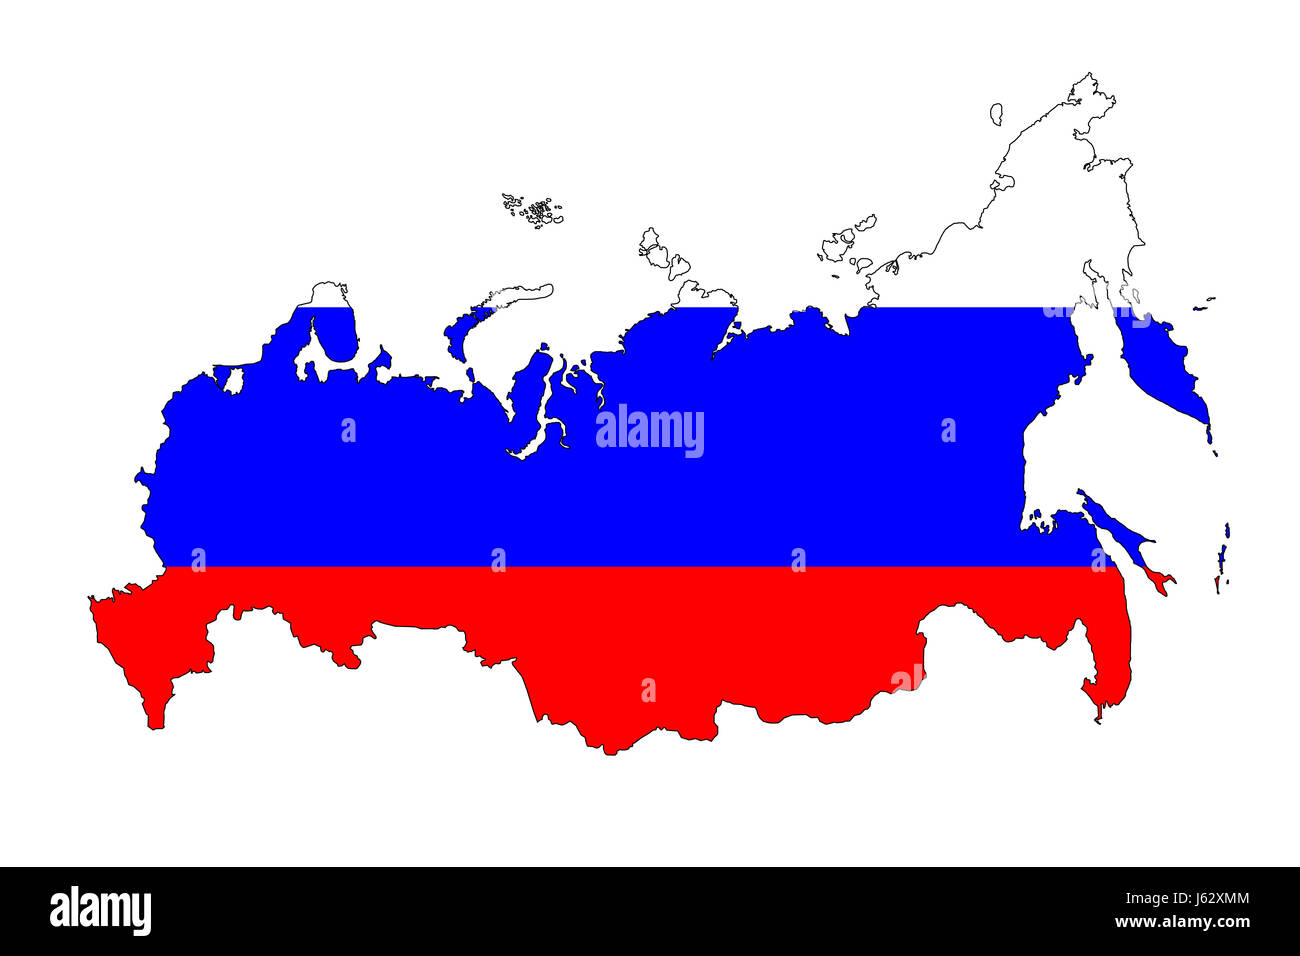 Europe flag country russia geography map atlas map of the world europe flag country russia geography map atlas map of the world moscow blue gumiabroncs